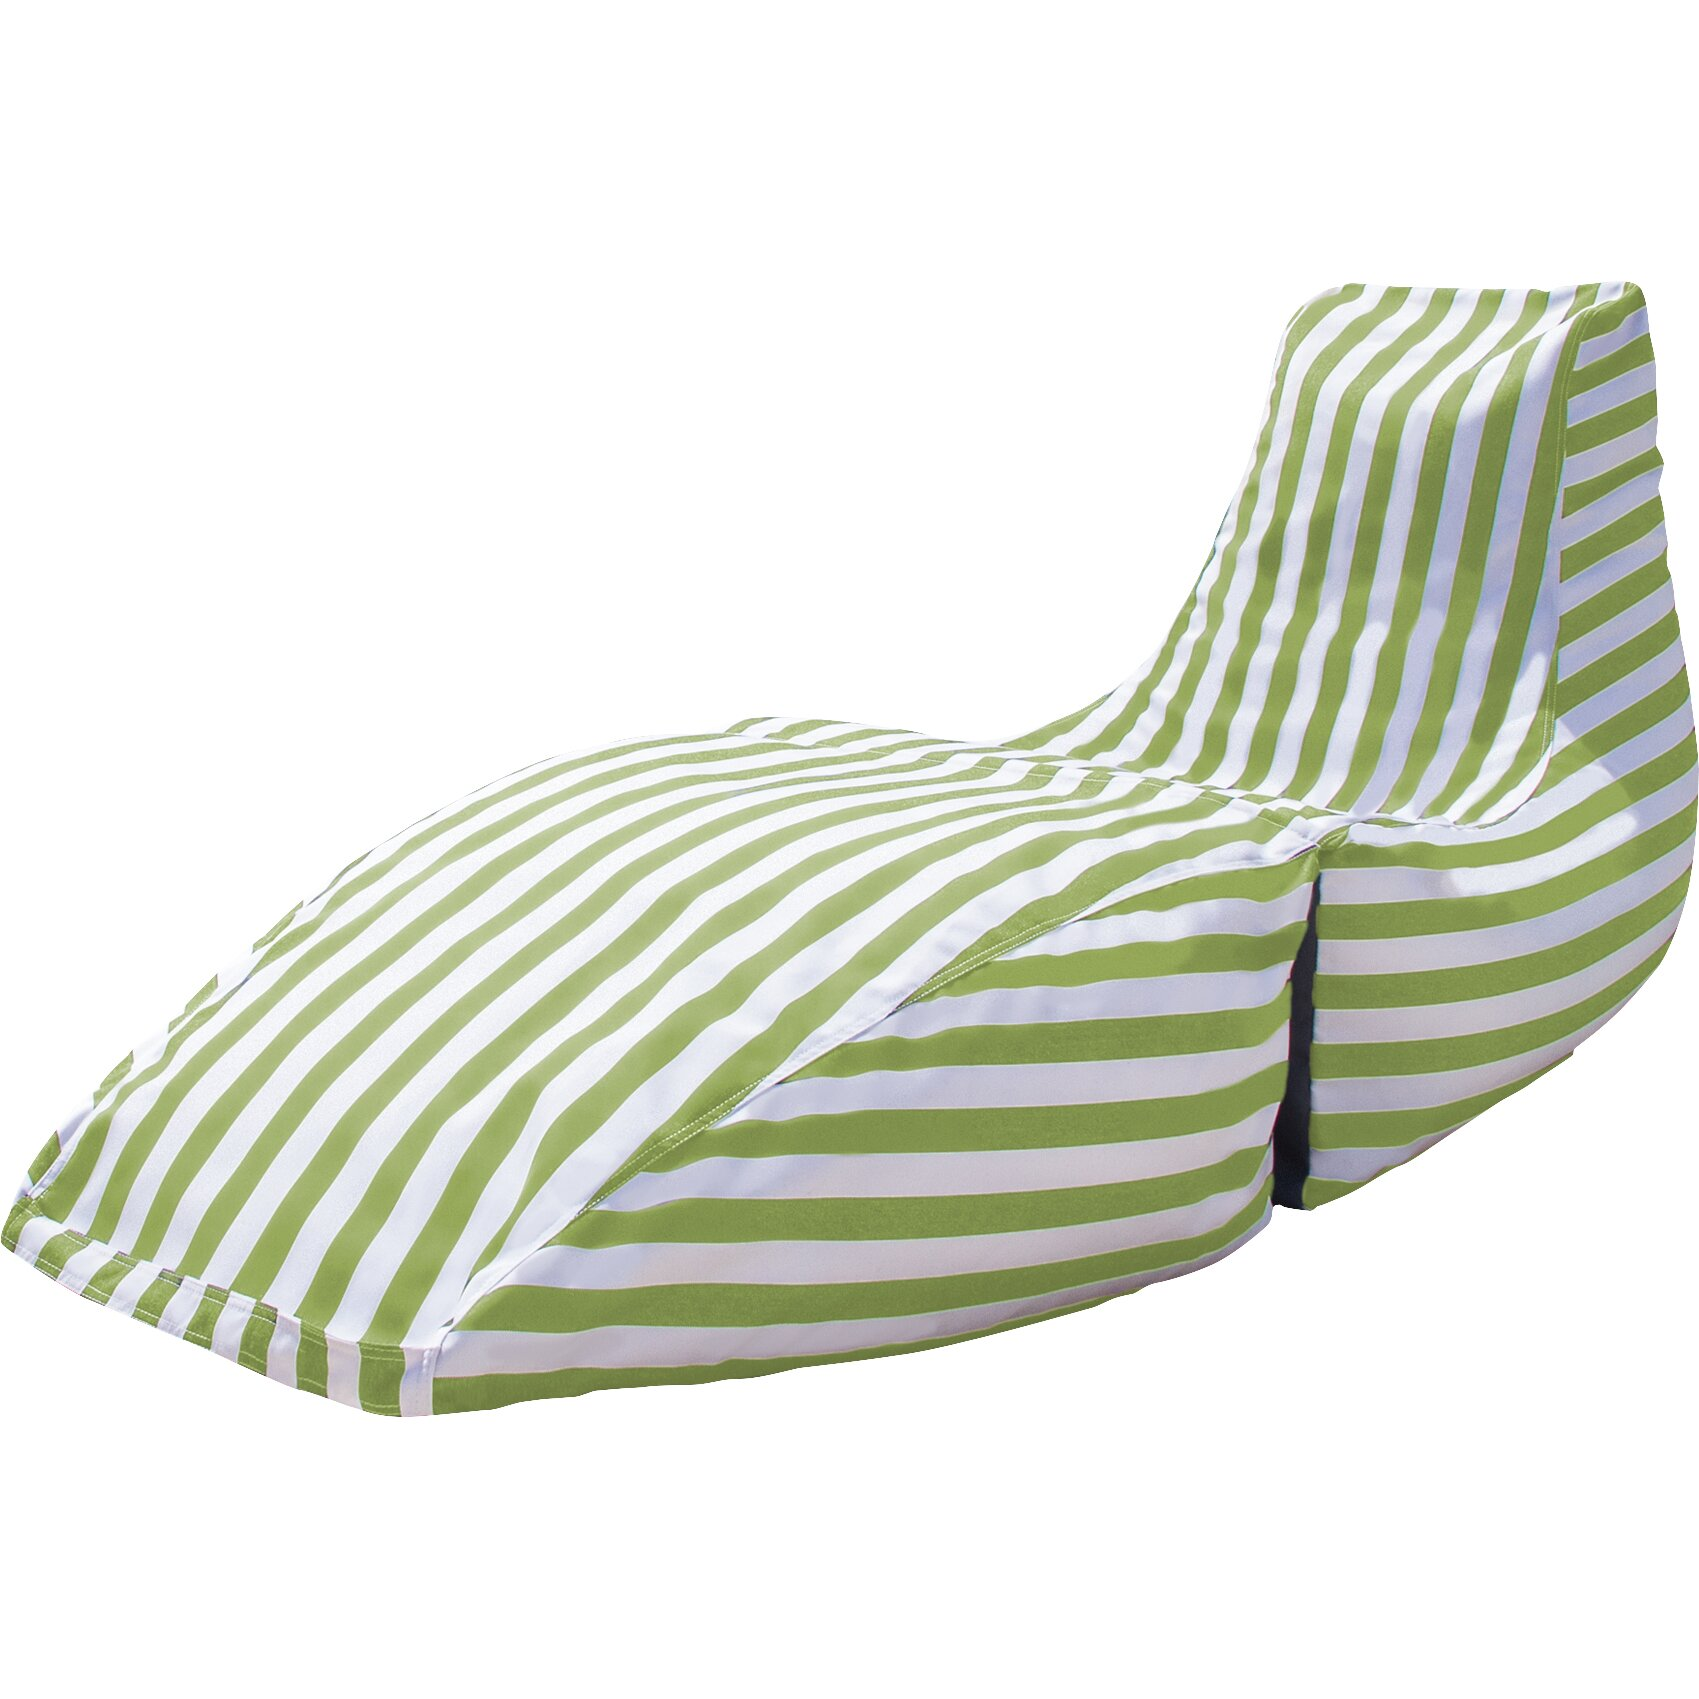 Jaxx prado outdoor striped bean bag chaise lounge chair for Bean bag chaise longue